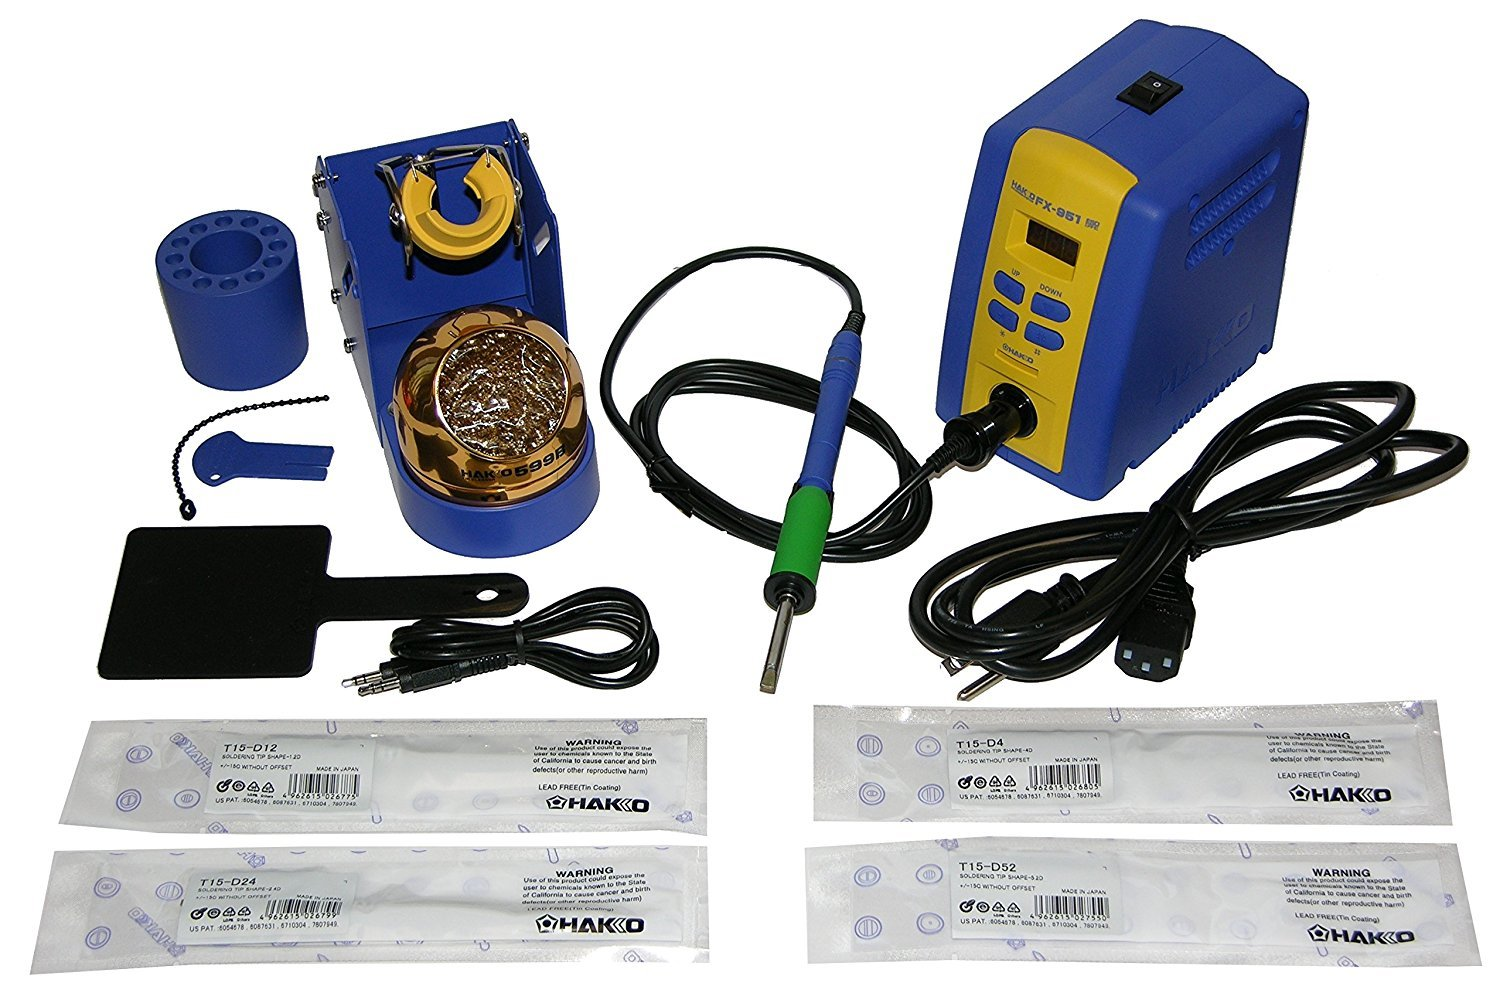 Hakko FX951-66 Professional Soldering Station with Chisel Tip Bundle. Inlcudes the following chisel tips: T15-D12, T15-D24, T15-D4, T15-D52.